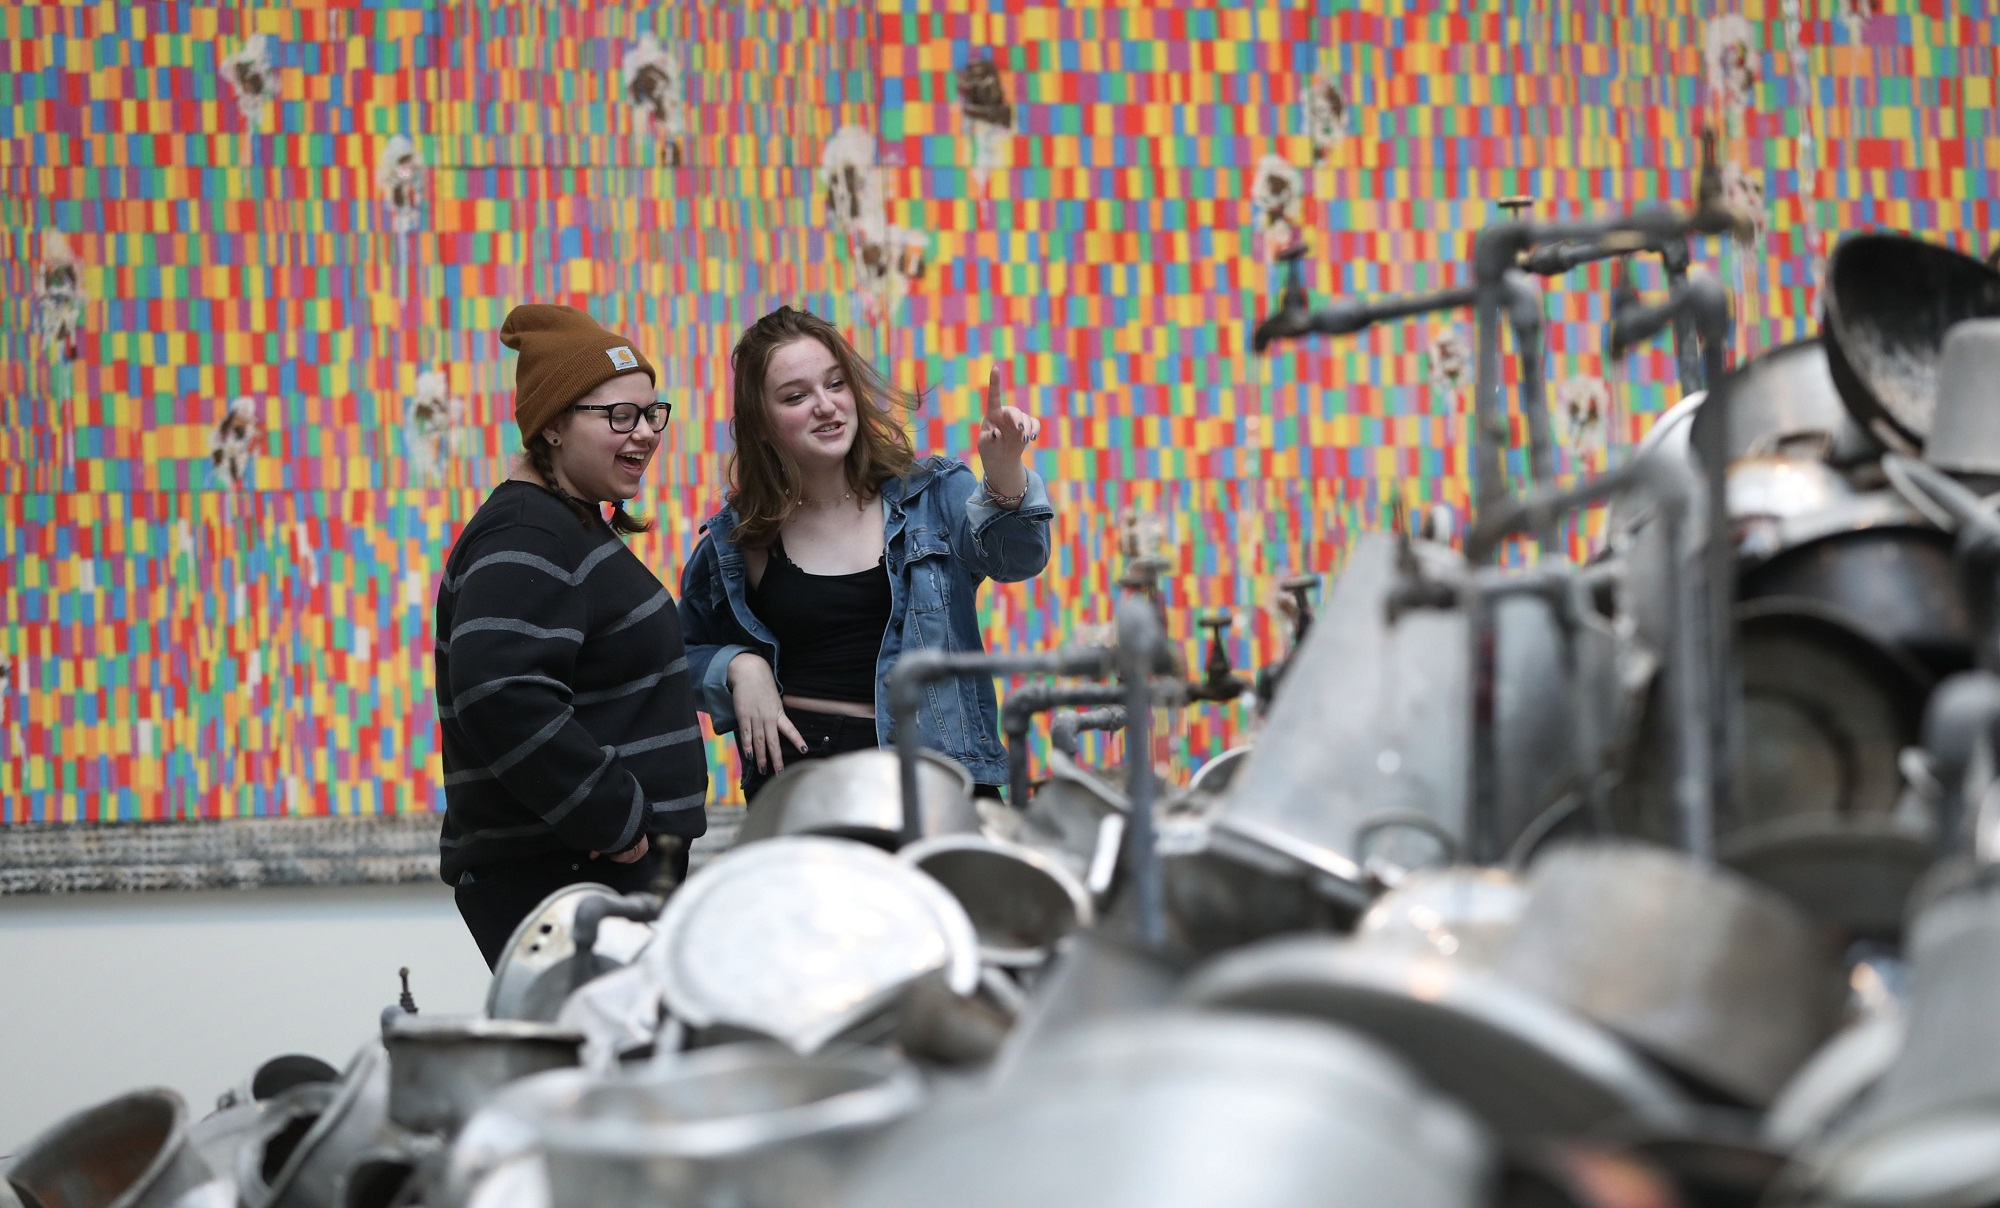 Author Jill Maxick of Williamsville, not pictured, takes her daughter London Deckert, 15, left, and her friend Emilia Lis, 15, to the Albright-Knox Art Gallery as part of an Art in the City excursion. (Sharon Cantillon/Buffalo News)